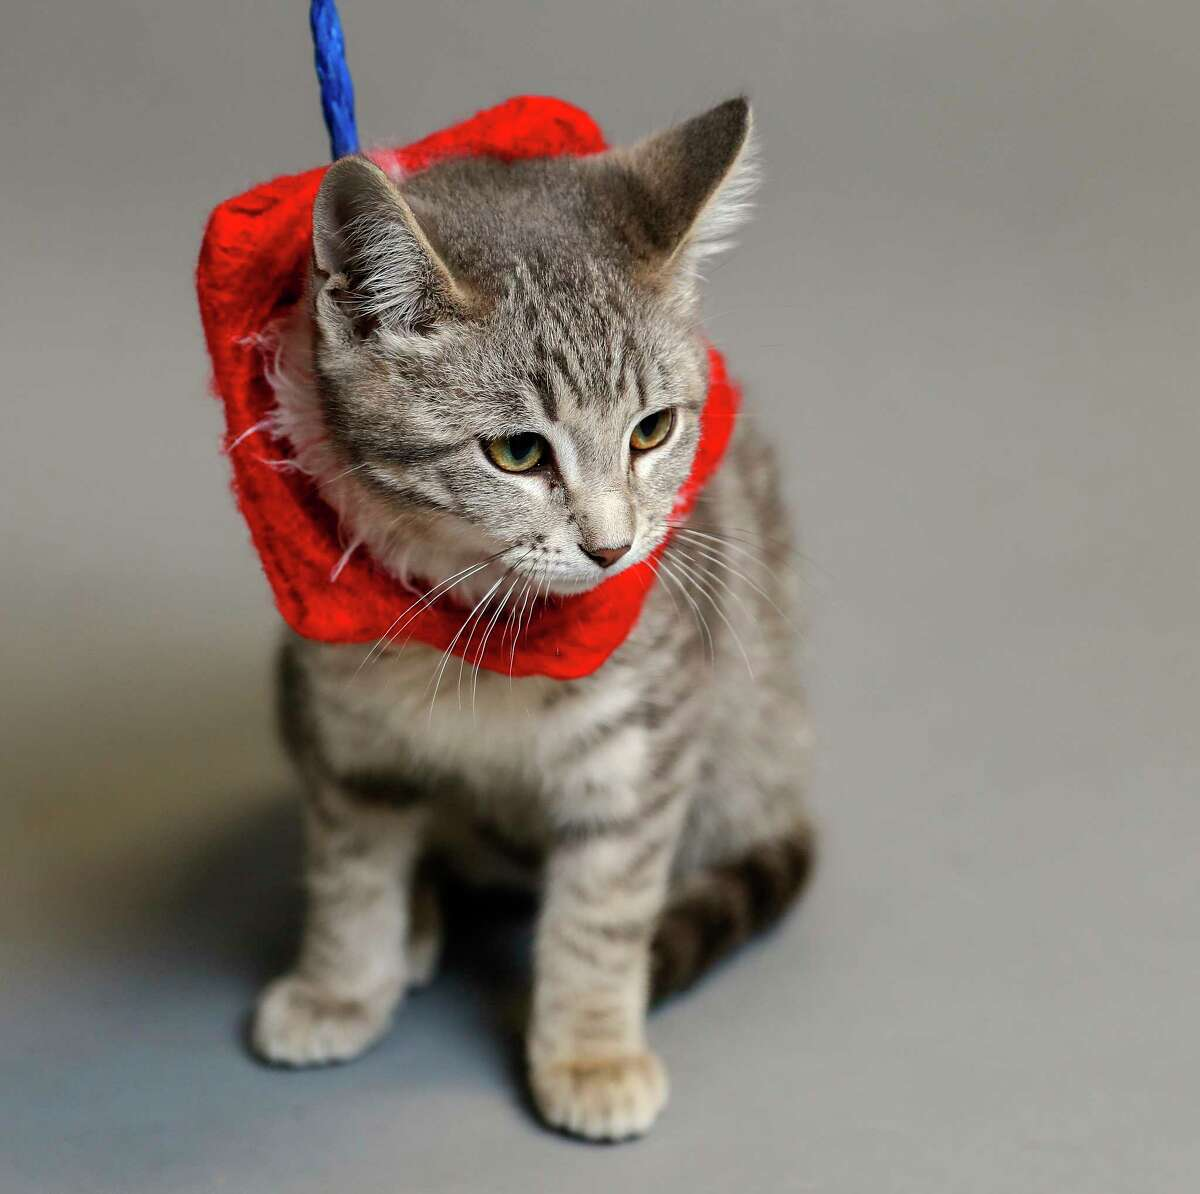 Wendy (A547263) is a 14-week-old, female, grey tabby kitten available for adoption from the Harris County Animal Shelter. Photographed, Monday, Dec. 16, 2019, in Houston. Wendy was surrendered by her owner to the shelter, for unknown reasons, however the former owners noted that she travels well in a carrier, and is litter box trained, and loves men and women. The Harris County Animal Shelter is participating in a holiday adoption/foster event that Best Friends is initiating in collaboration with BARC, Harris County Animal Shelter, Montgomery County Animal Shelter and Fort Bend Animal Services Center. The local shelters typically see an uptick in animal intake right before holidays. Yet, the holidays are also a popular time for people to acquire a pet. So, in this season of giving we are urging the community to be